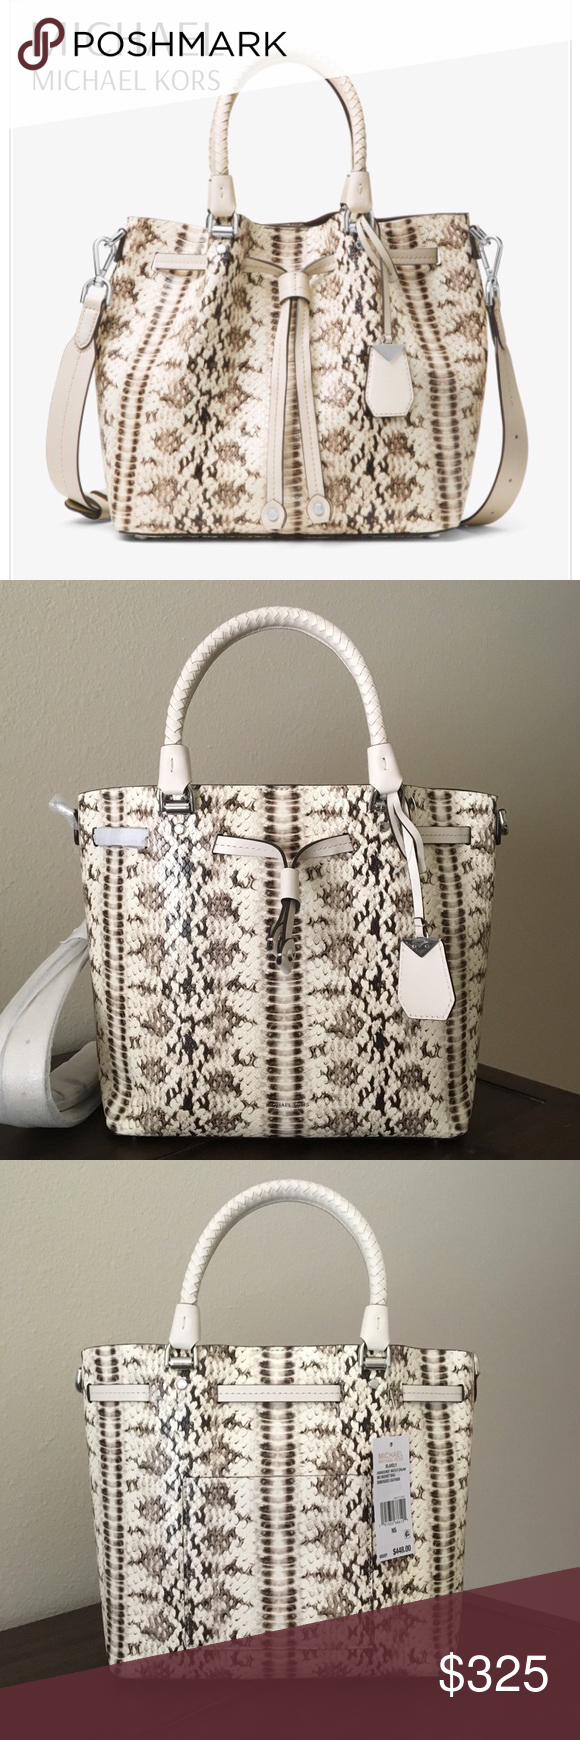 76764e098126d Michael Kors Blakely Medium Bucket Bag NWT. Gorgeous! The Blakely bucket bag  is crafted from snake-embossed leather with woven top handles.